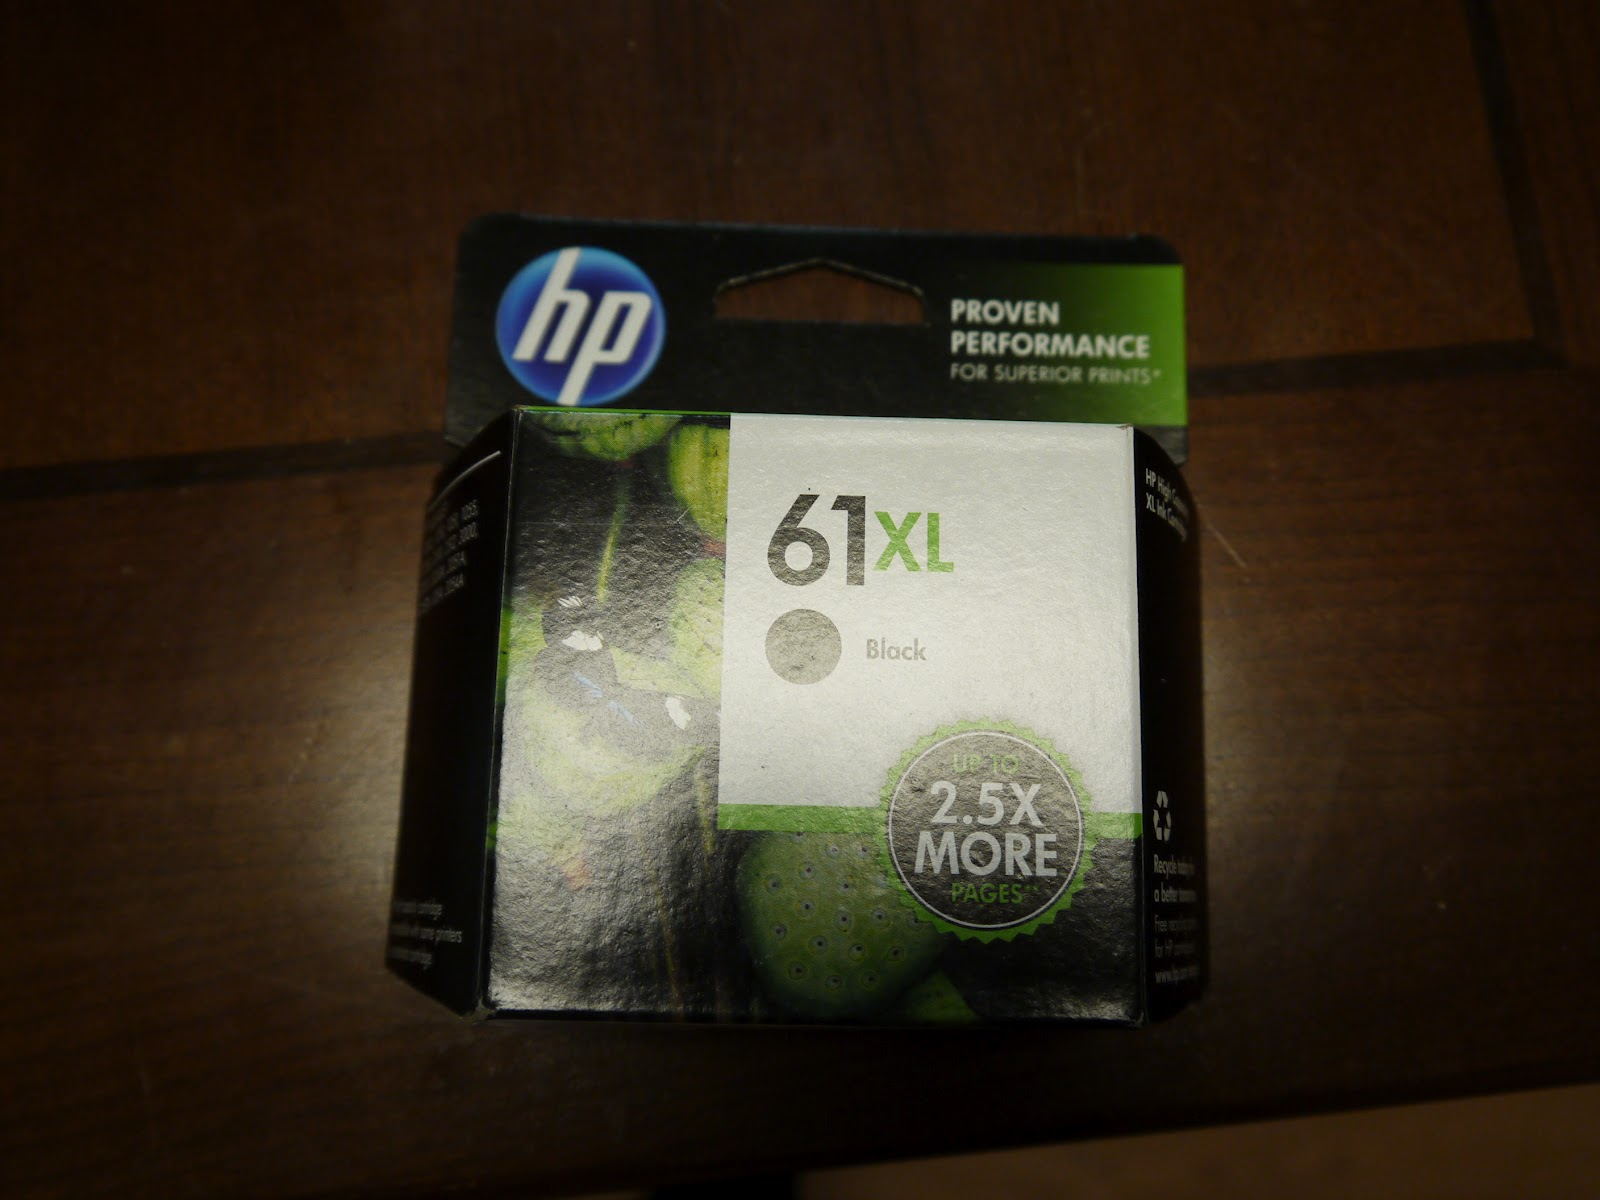 At the Fence HP XL Ink Cartridges and Walmart